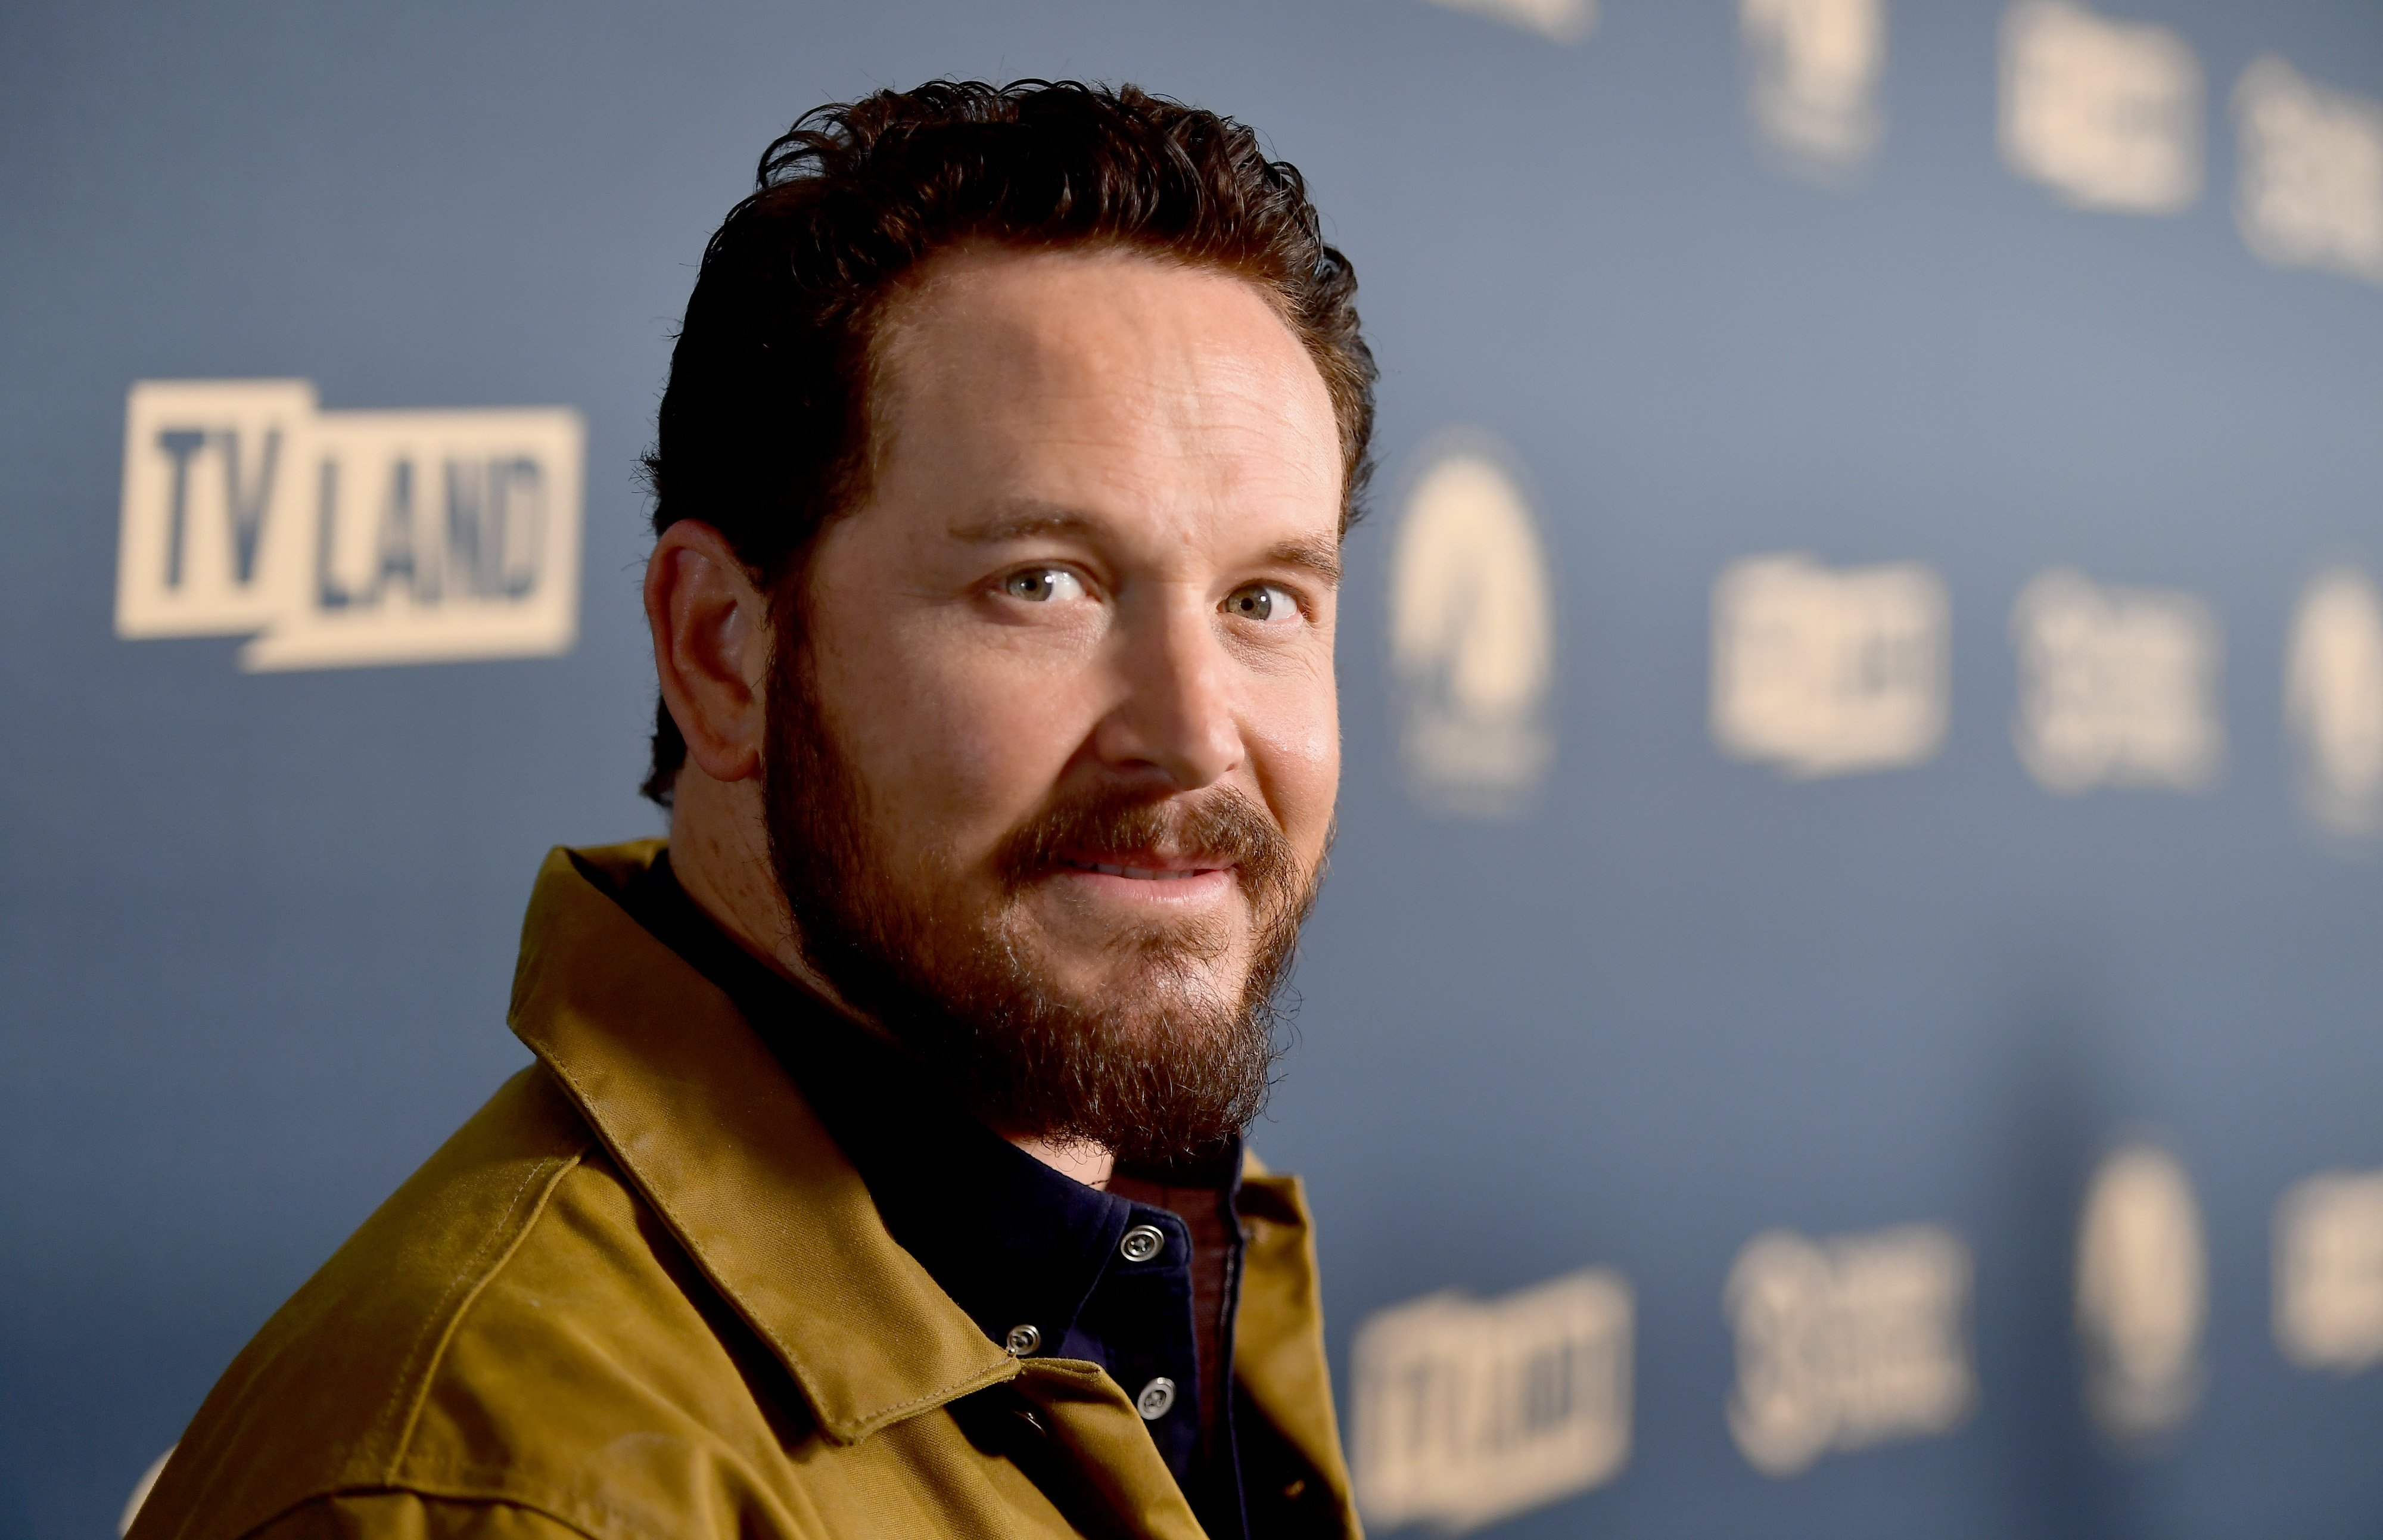 Cole Hauser attends the Comedy Central, Paramount Network and TV Land summer press day at The London Hotel on May 30, 2019, in West Hollywood, California. | Source: Getty Images.